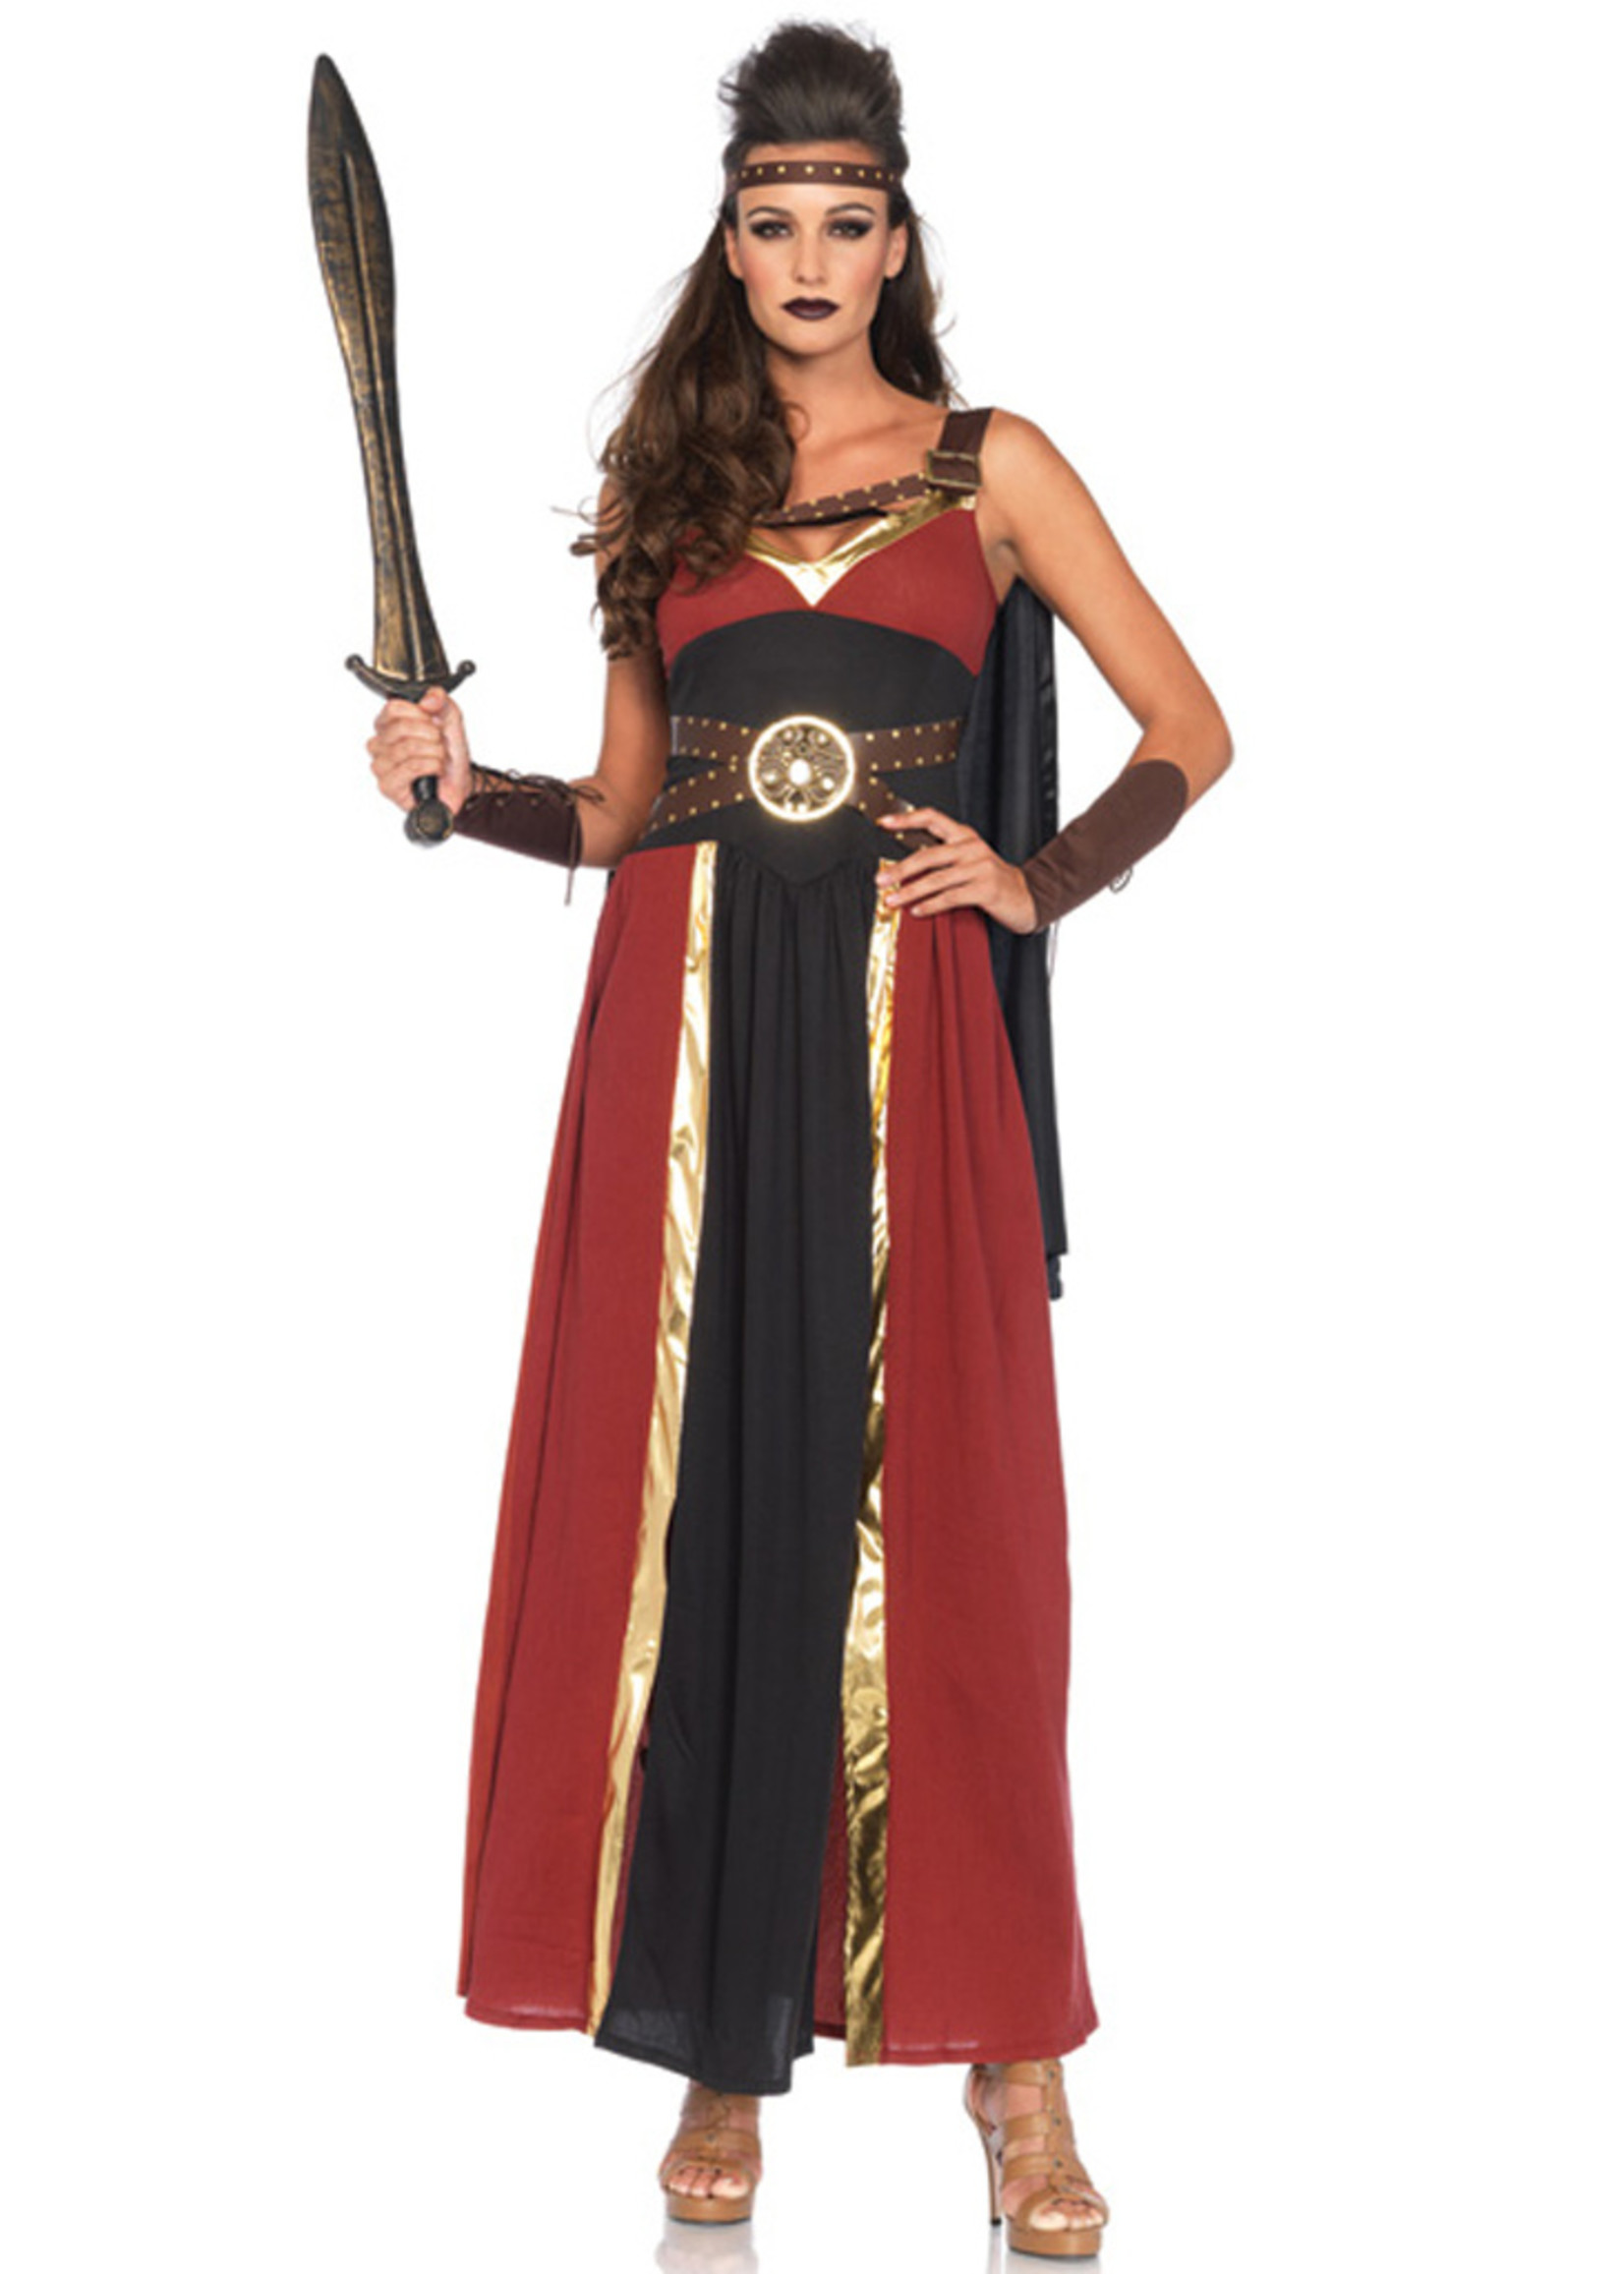 Regal Warrior Costume - Women's